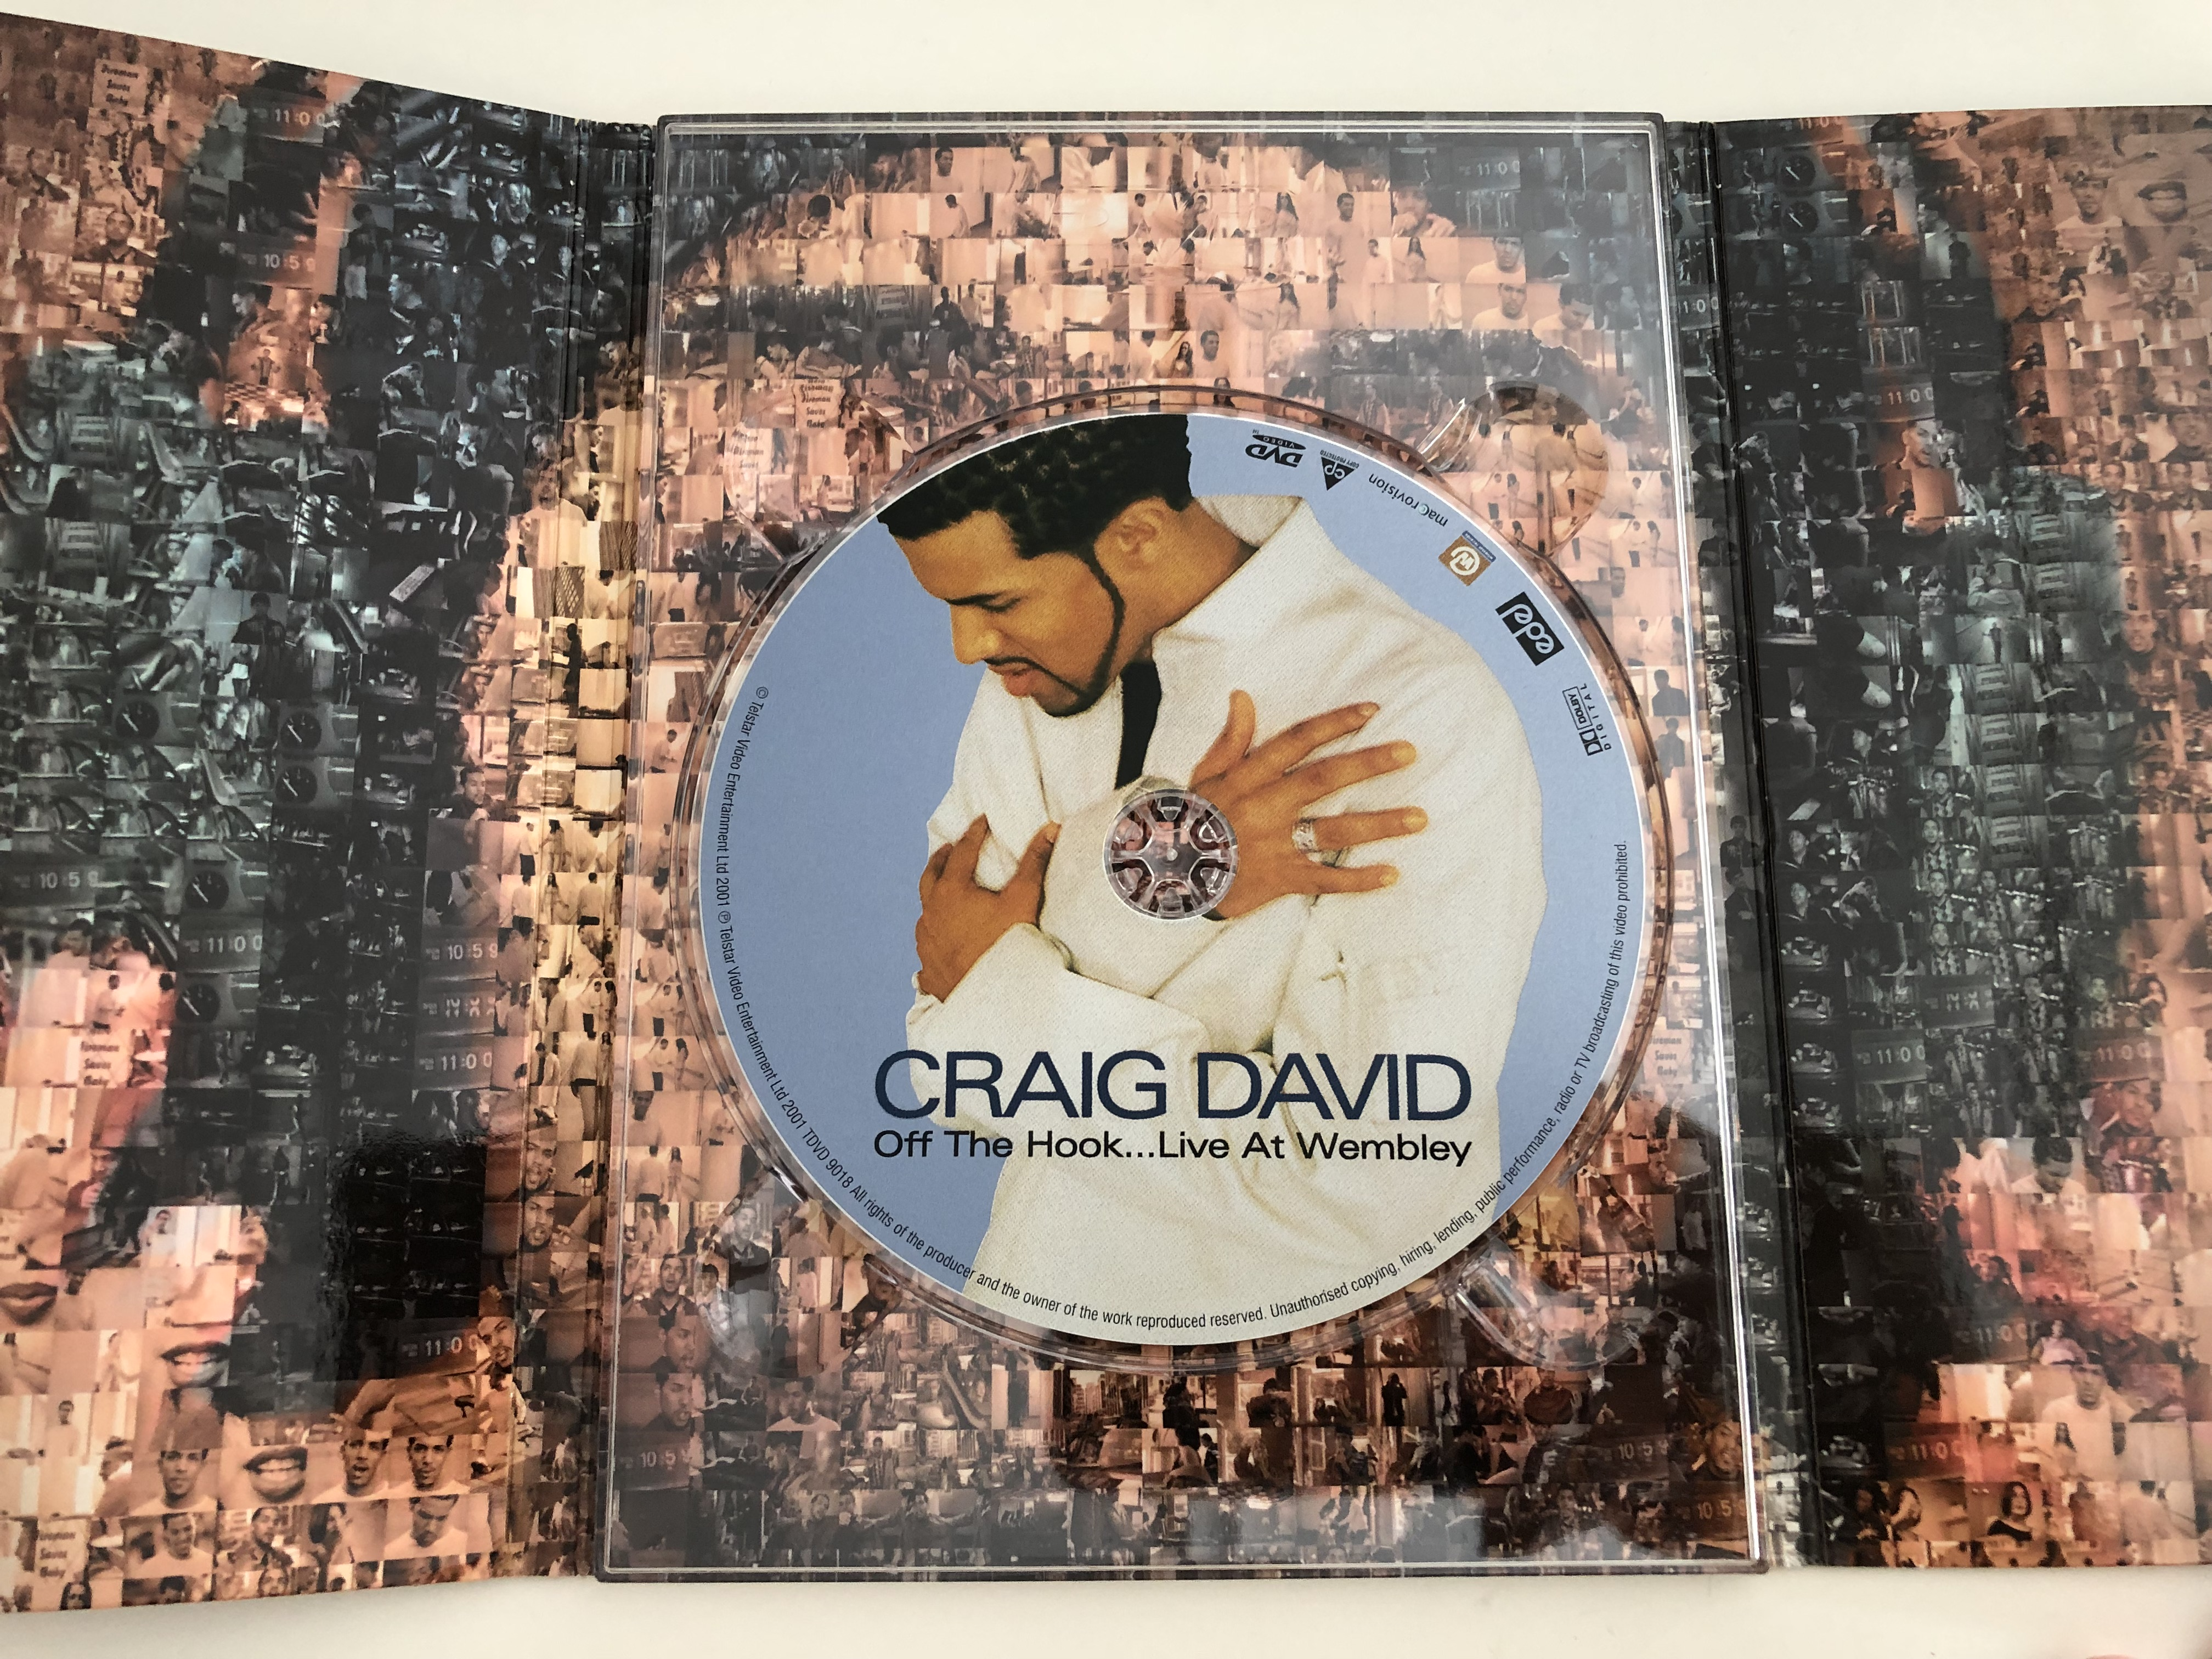 craig-david-off-the-hook-live-at-wembley-dvd-2001-over-200-minutes-of-essential-viewing-2-.jpg